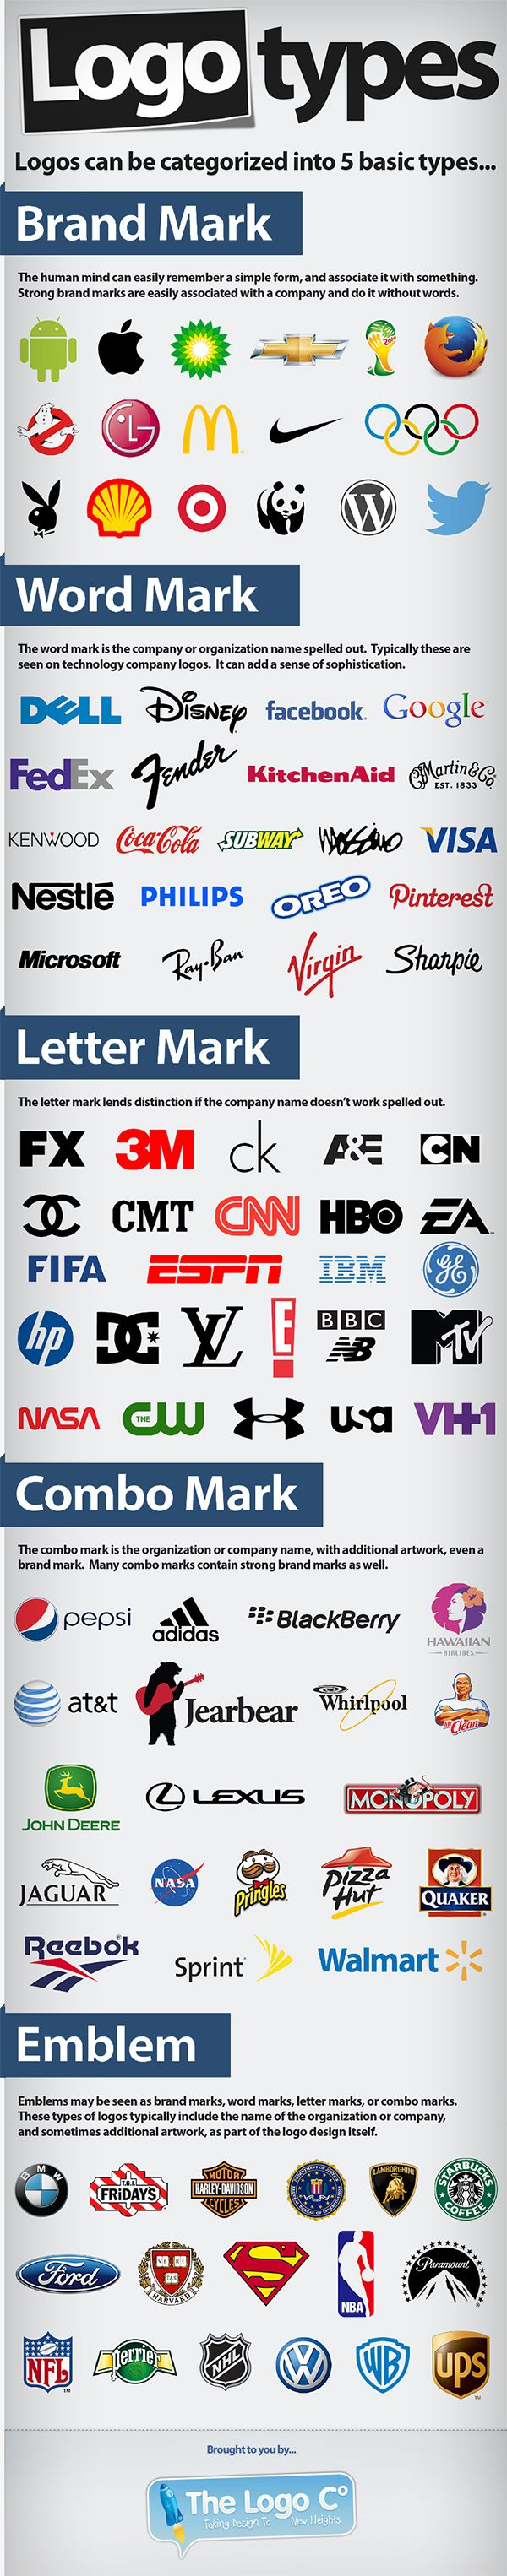 5 Basic Types of Logo to Help You Decide What Kind Your